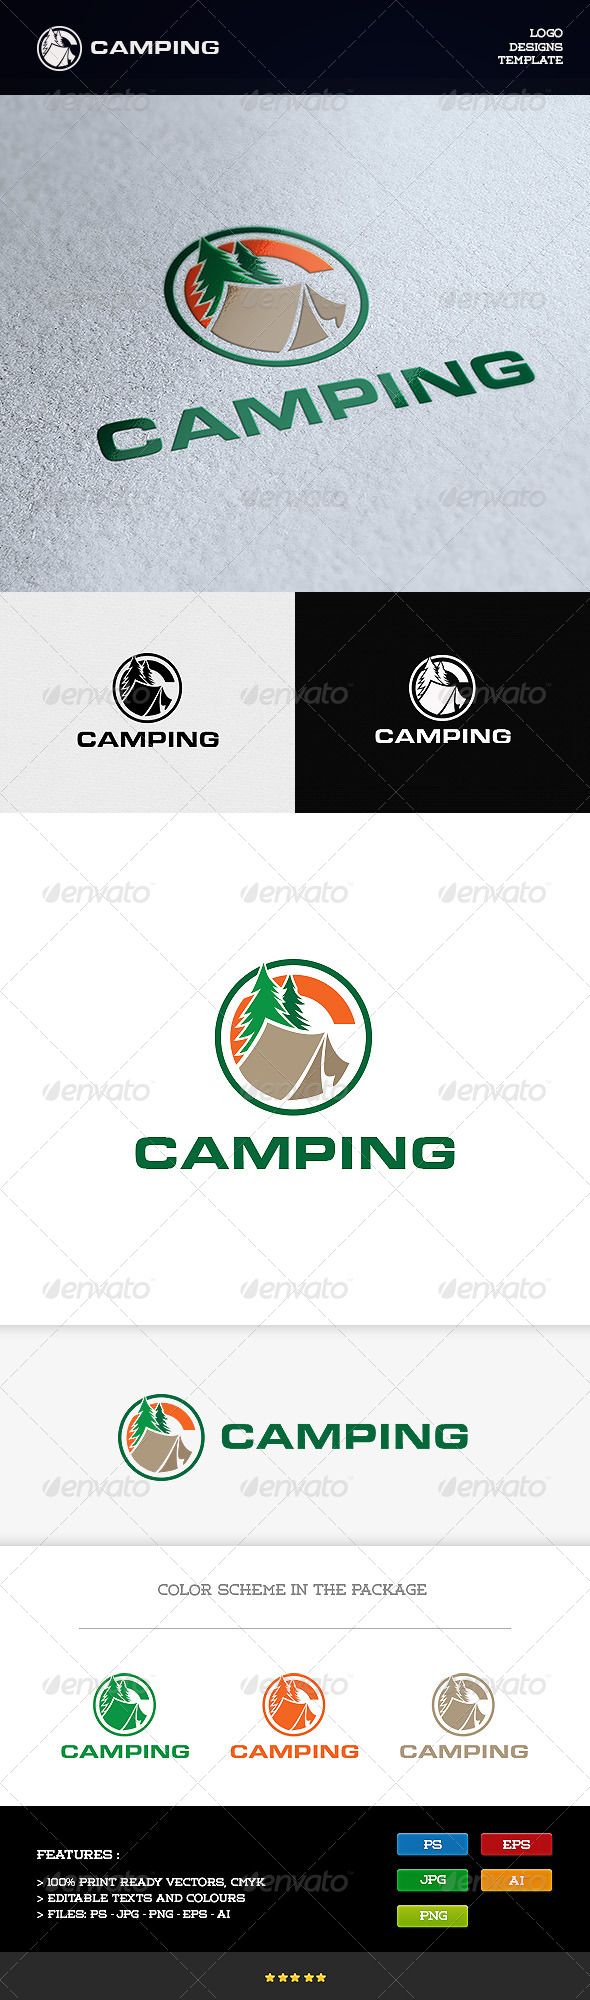 GraphicRiver Camping 8198233